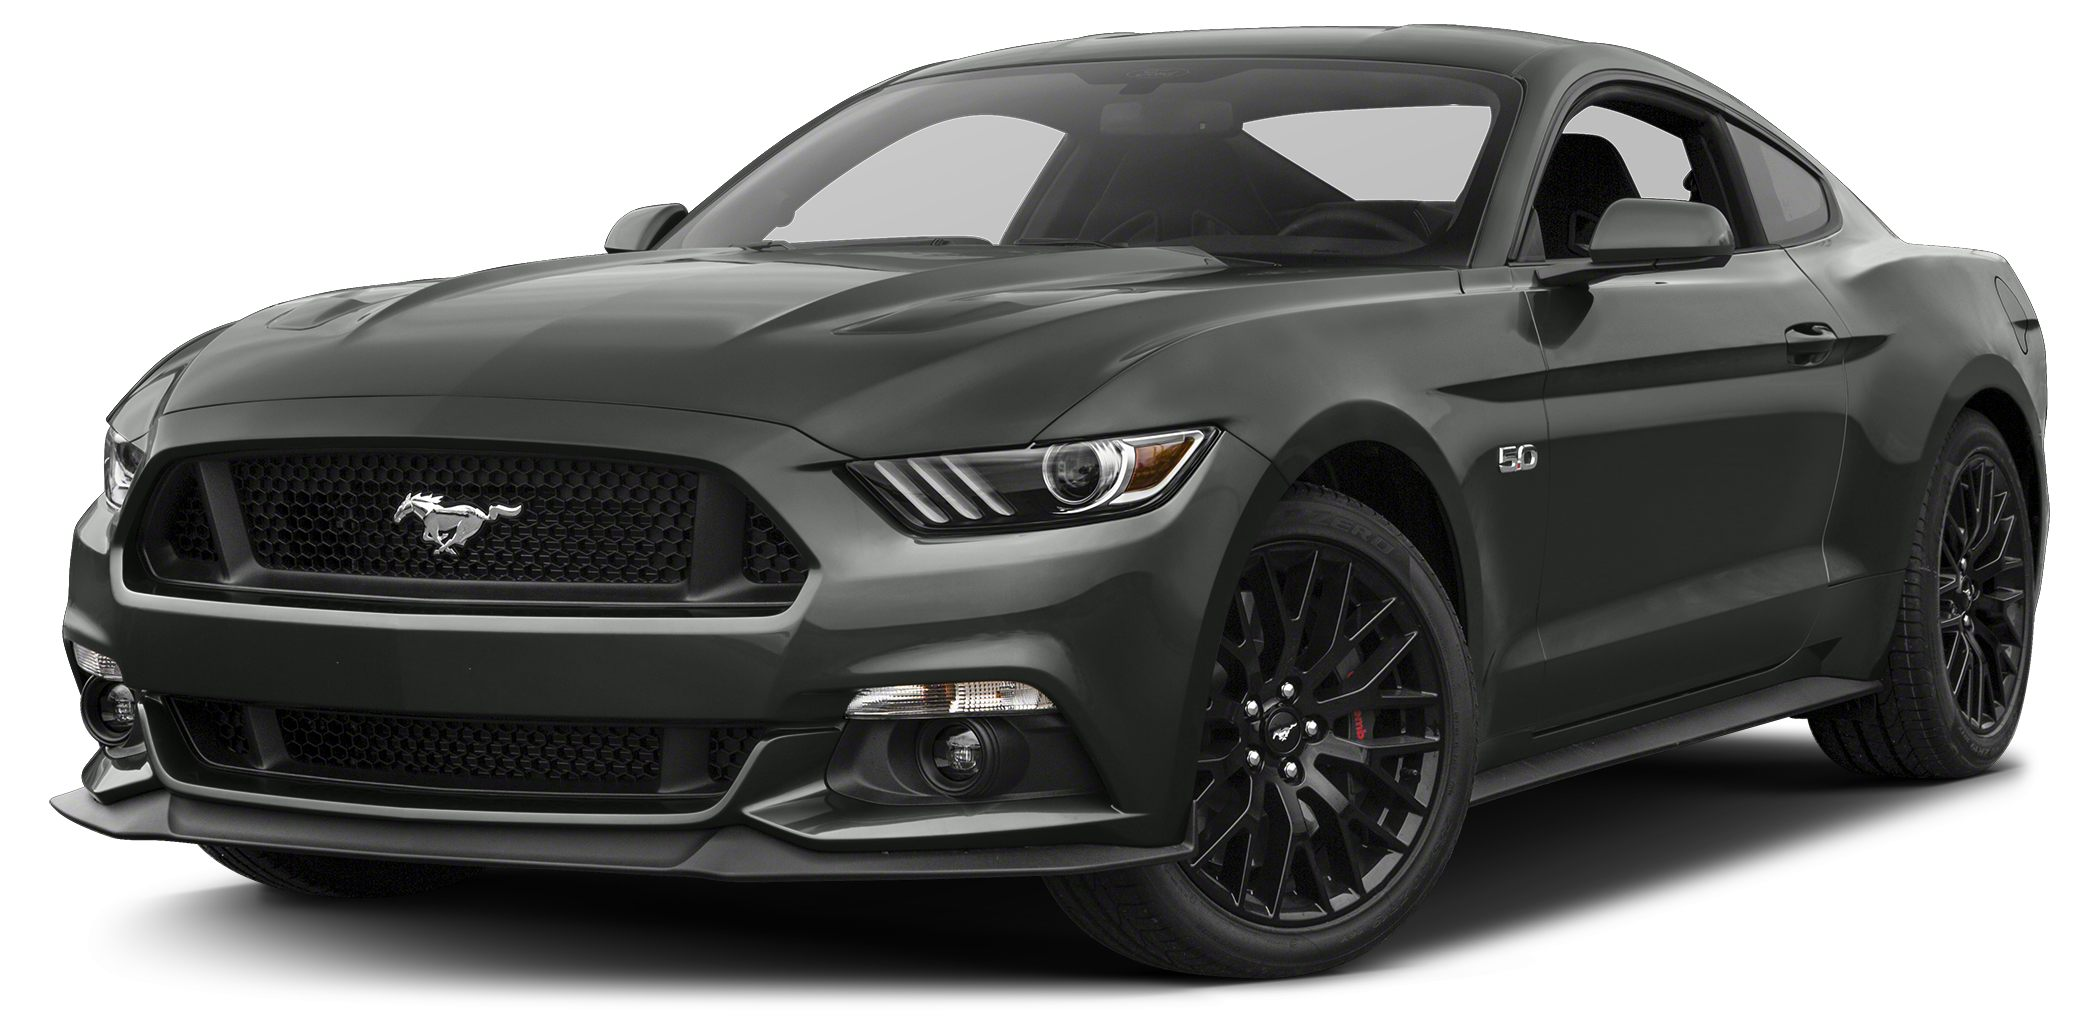 2016 Ford Mustang GT Premium The Ford Mustang is an American classic that lives on The body has b